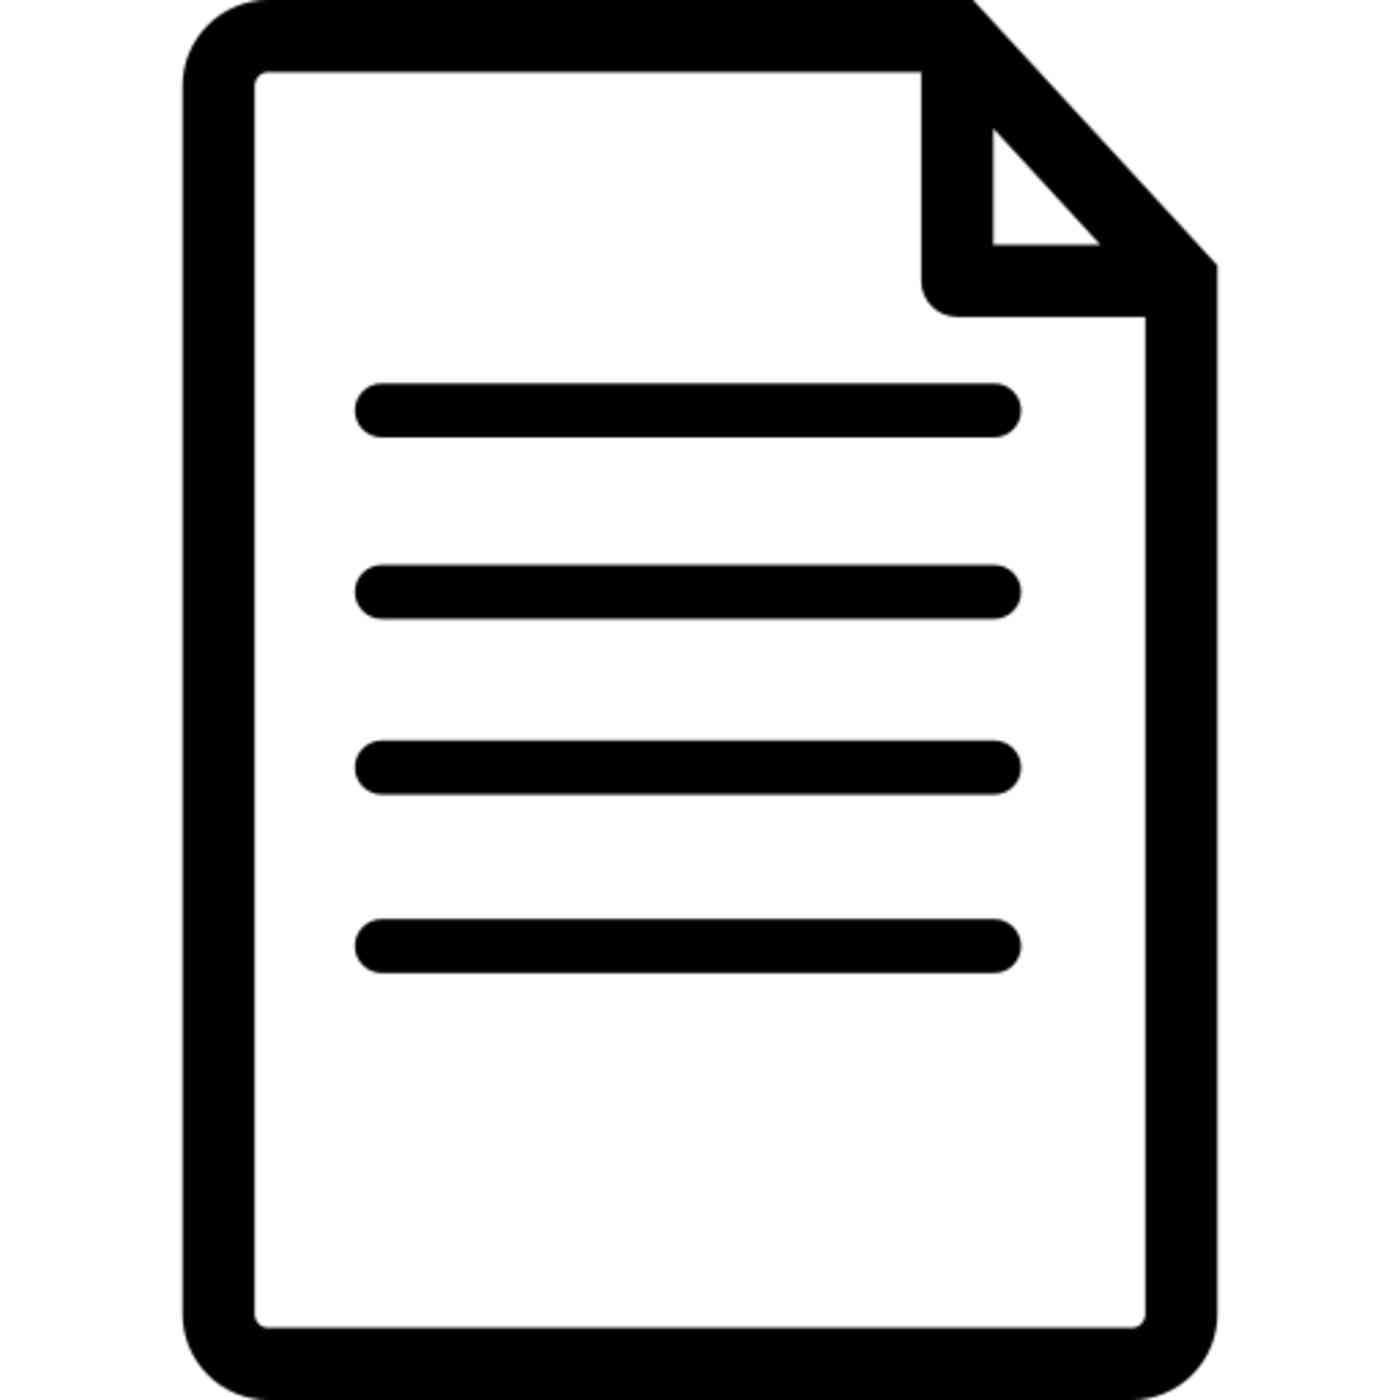 Icon of a document